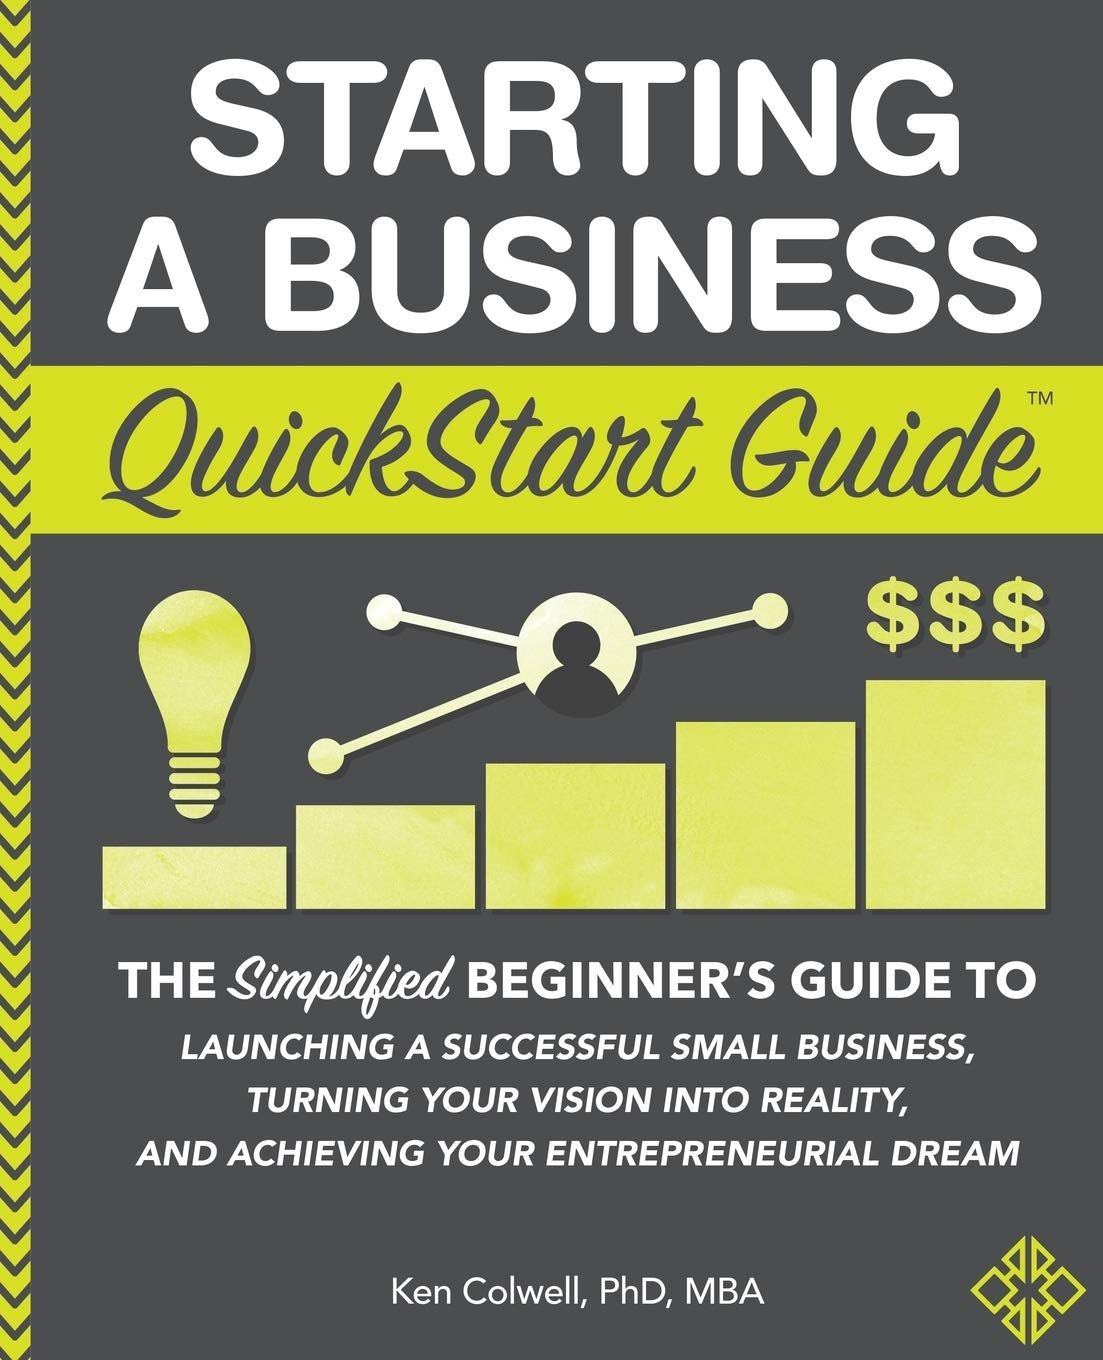 Starting a Business QuickStart Guide: The Simplified Beginner's Guide to  Launching a Successful Small Business, Turning Your Vision into Reality,  and ... Dream (QuickStart Guides™ - Business): Colwell PhD MBA, Ken:  9781945051821: